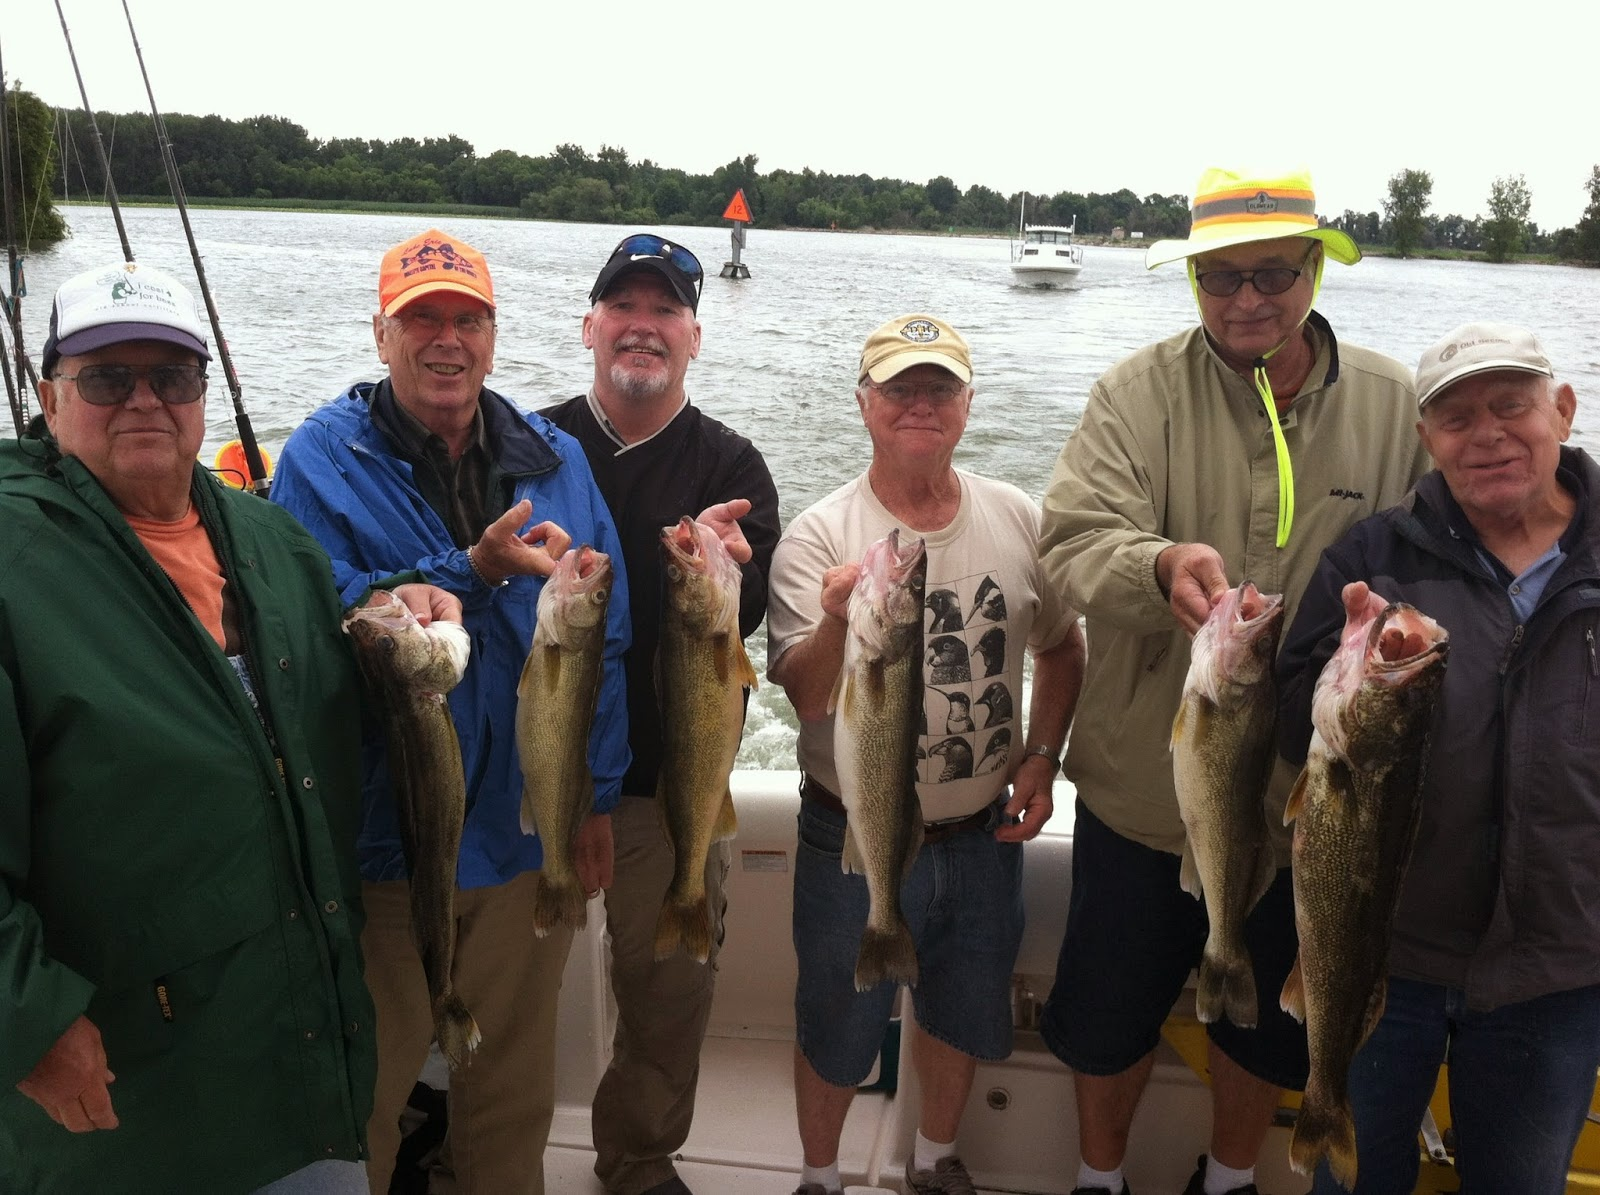 Lake erie walleye fishing reports august 2014 for Odnr fishing report